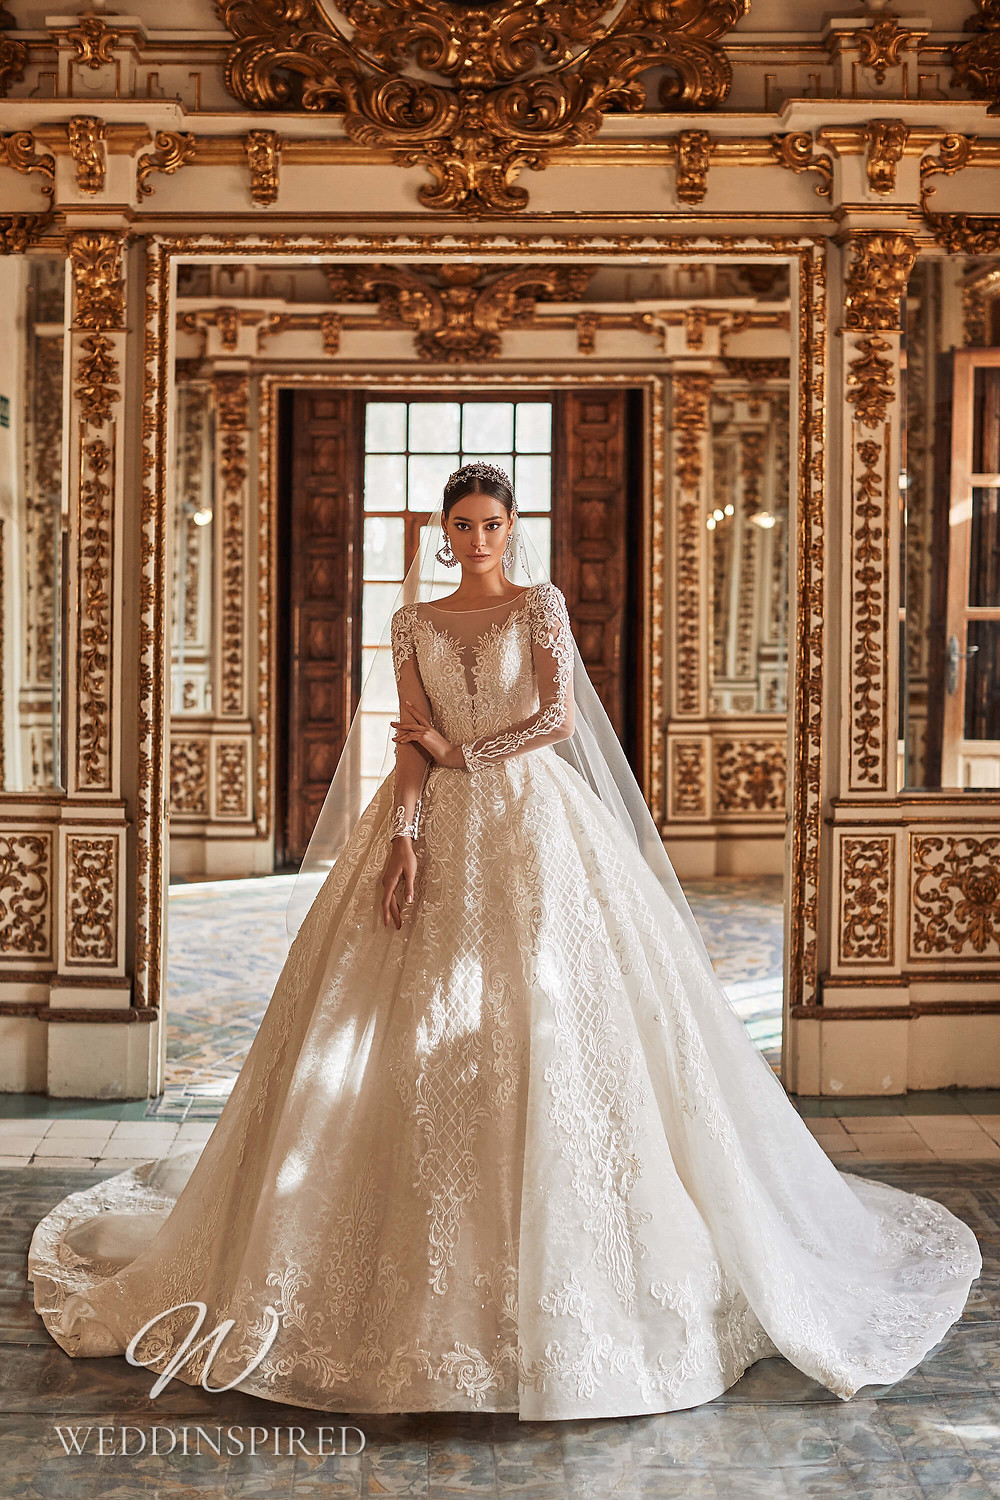 A Royal by Naviblue 2021 champagne lace and tulle princess wedding dress with long sleeves